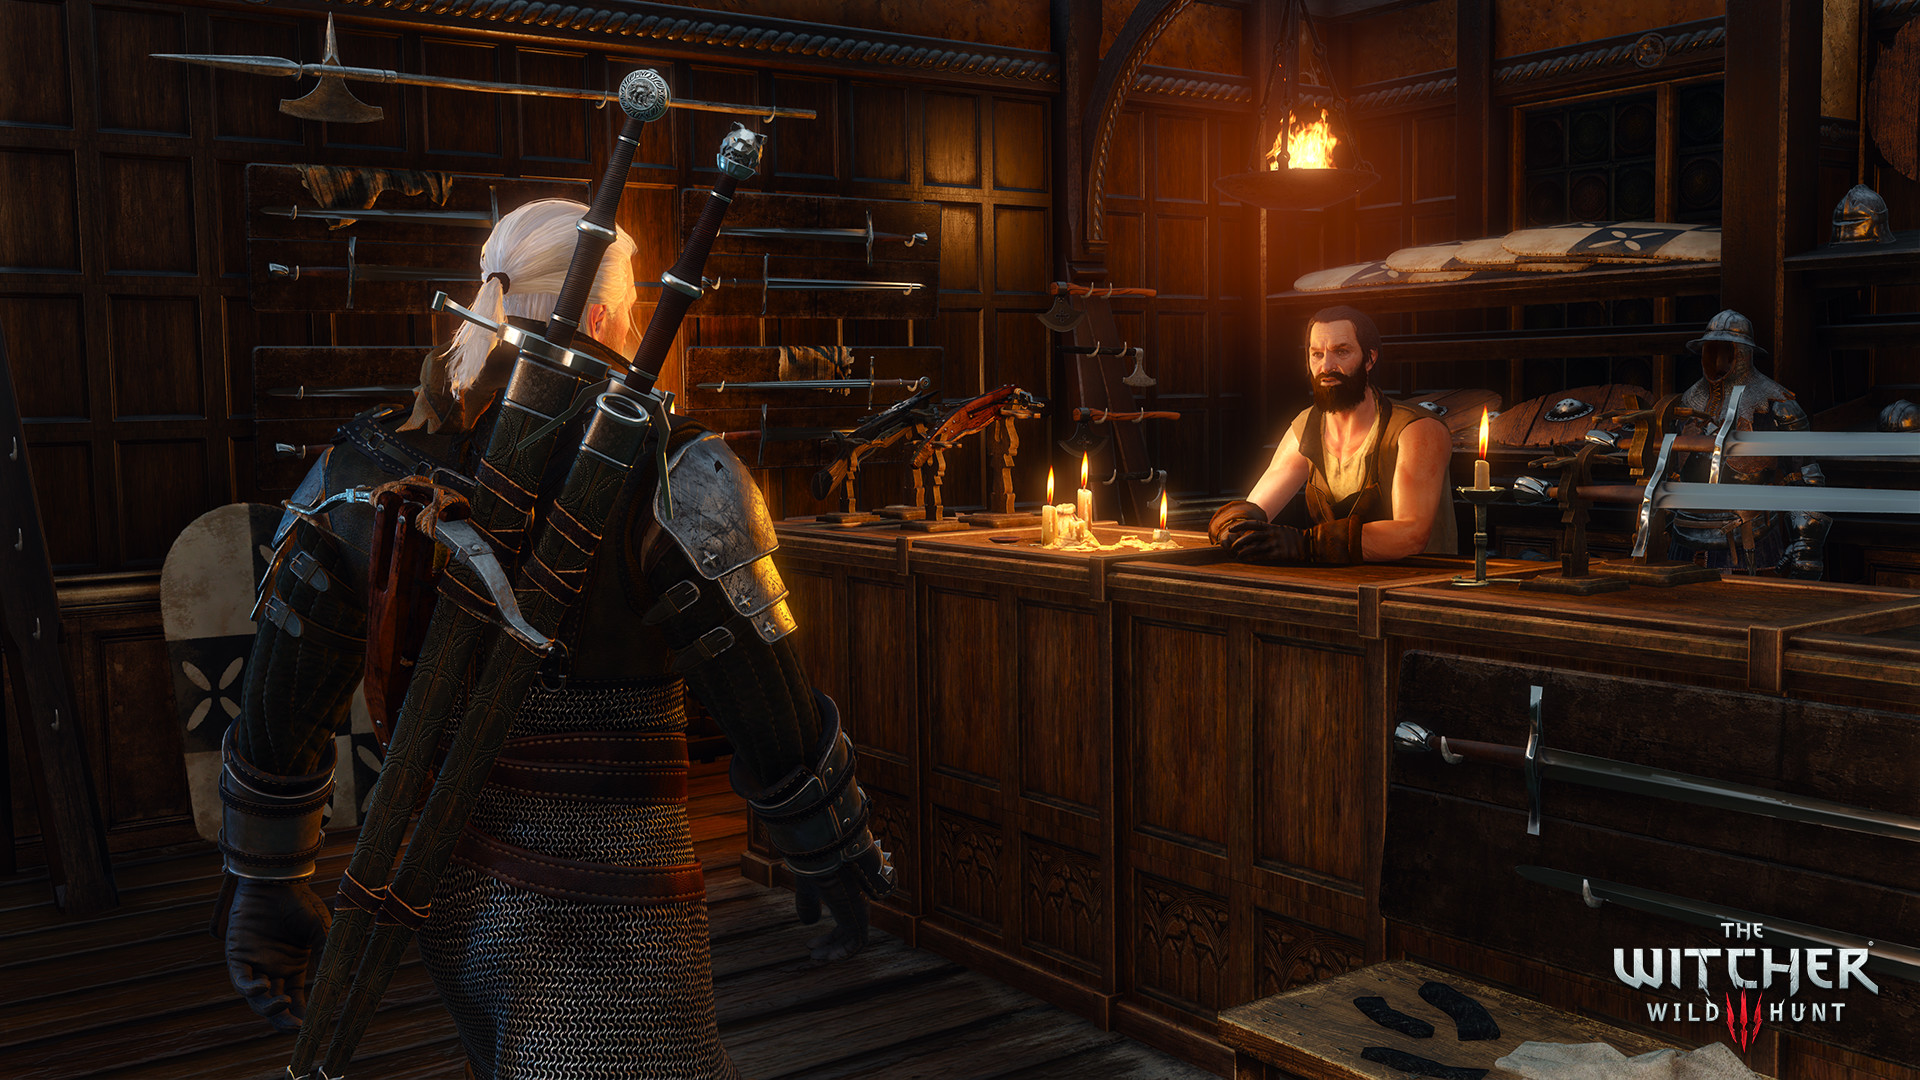 The Witcher 3 Wild Hunt ESPAÑOL PC Full + 16 DLC + Update v1.10 + Hearts Of Stone DLC + REPACK 6 DVD5 (JPW) 7